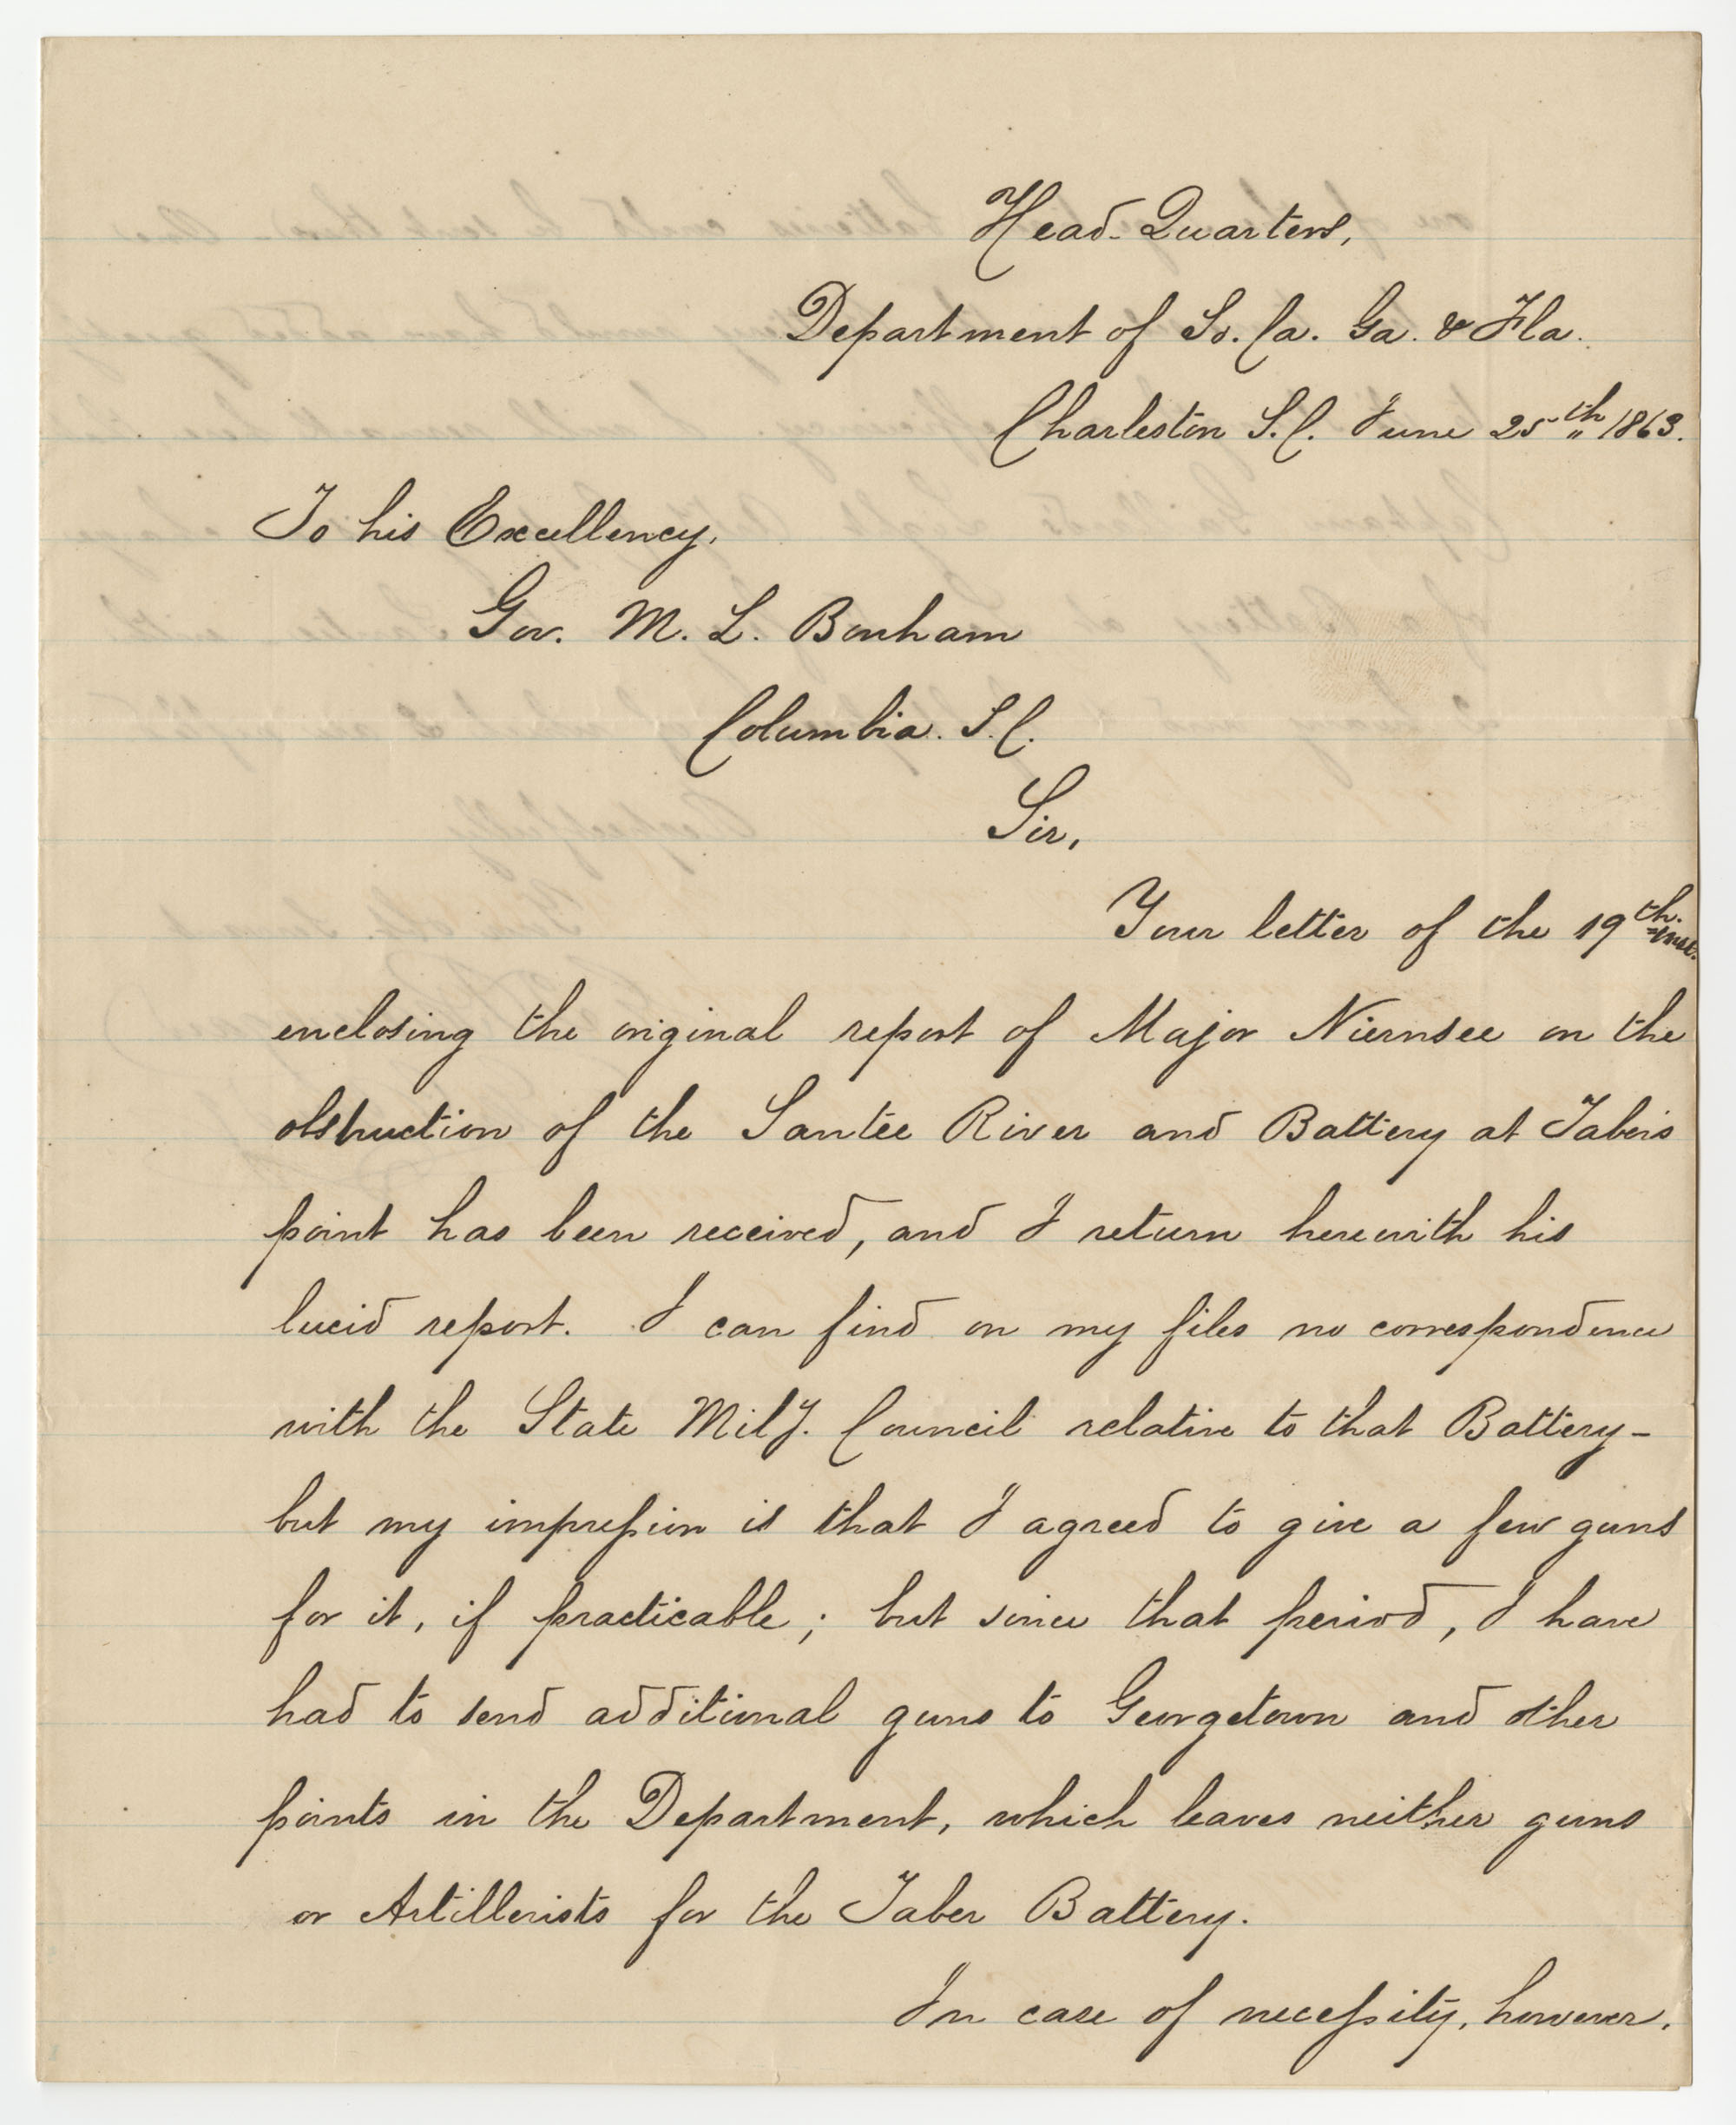 Gen. P. G. T. Beauregard Letter, June 25, 1863